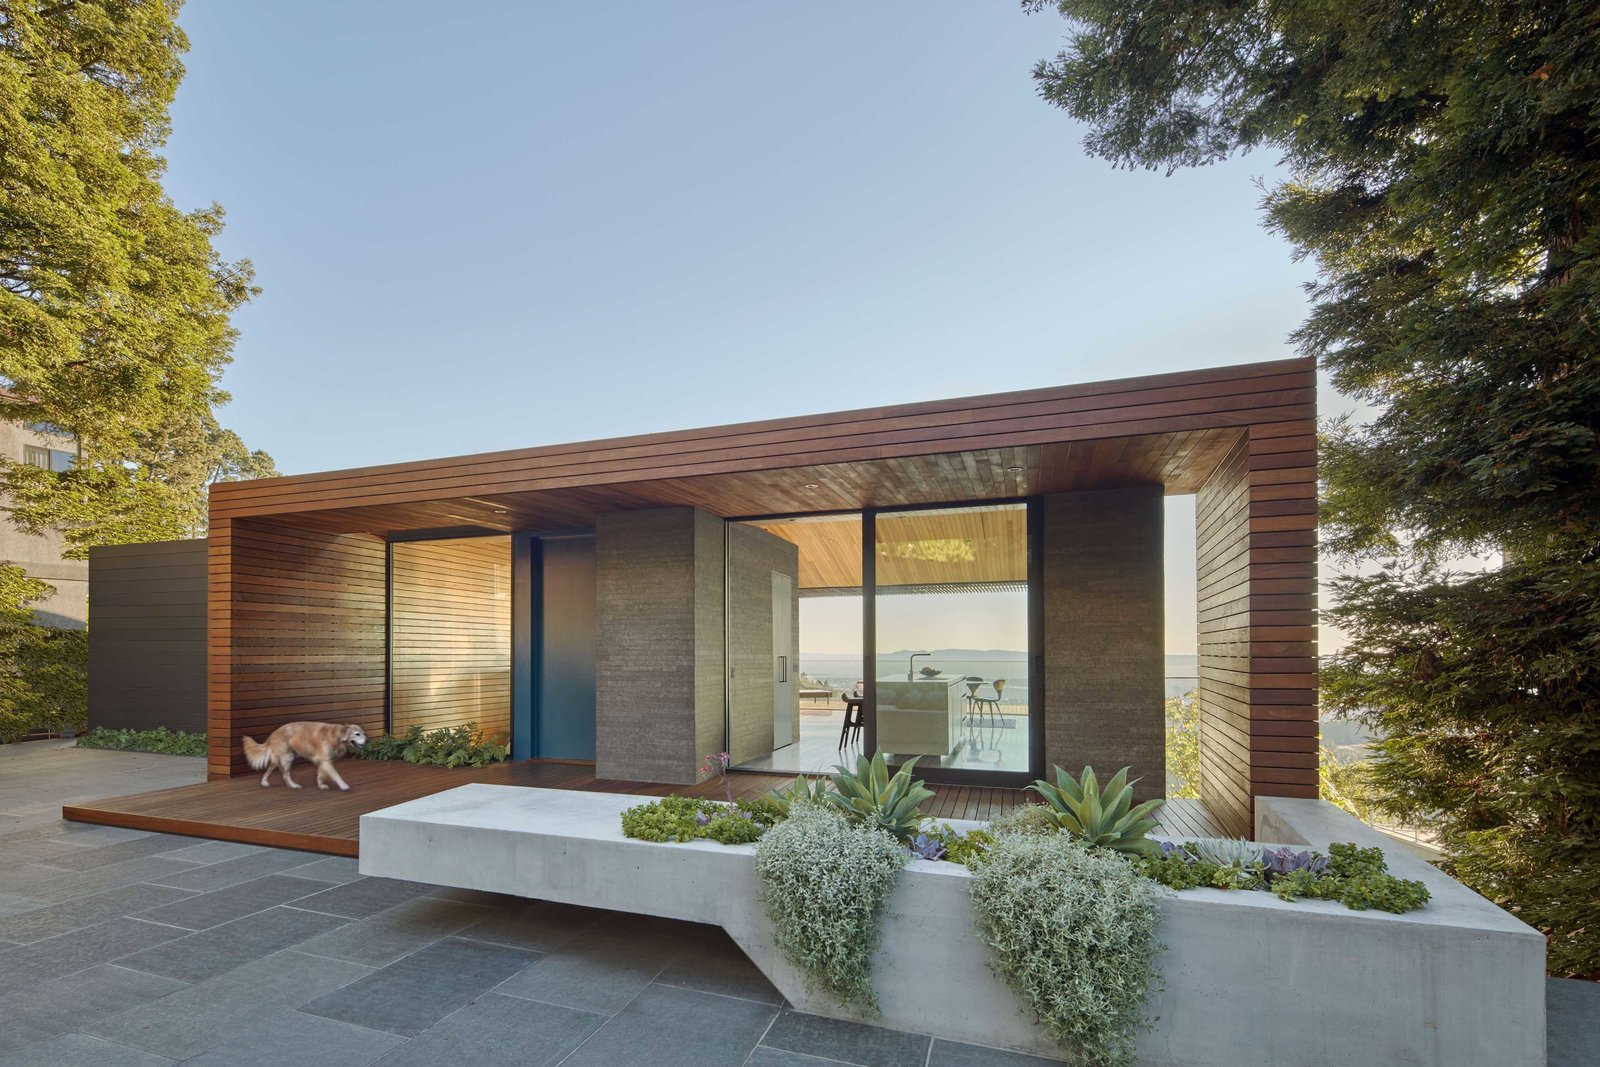 Front outdoor area Tagged: Outdoor, Front Yard, Shrubs, Trees, Hardscapes, Grass, Small Patio, Porch, Deck, Metal Fences, Wall, Landscape Lighting, and Gardens.  Skyline House by Terry & Terry Architecture